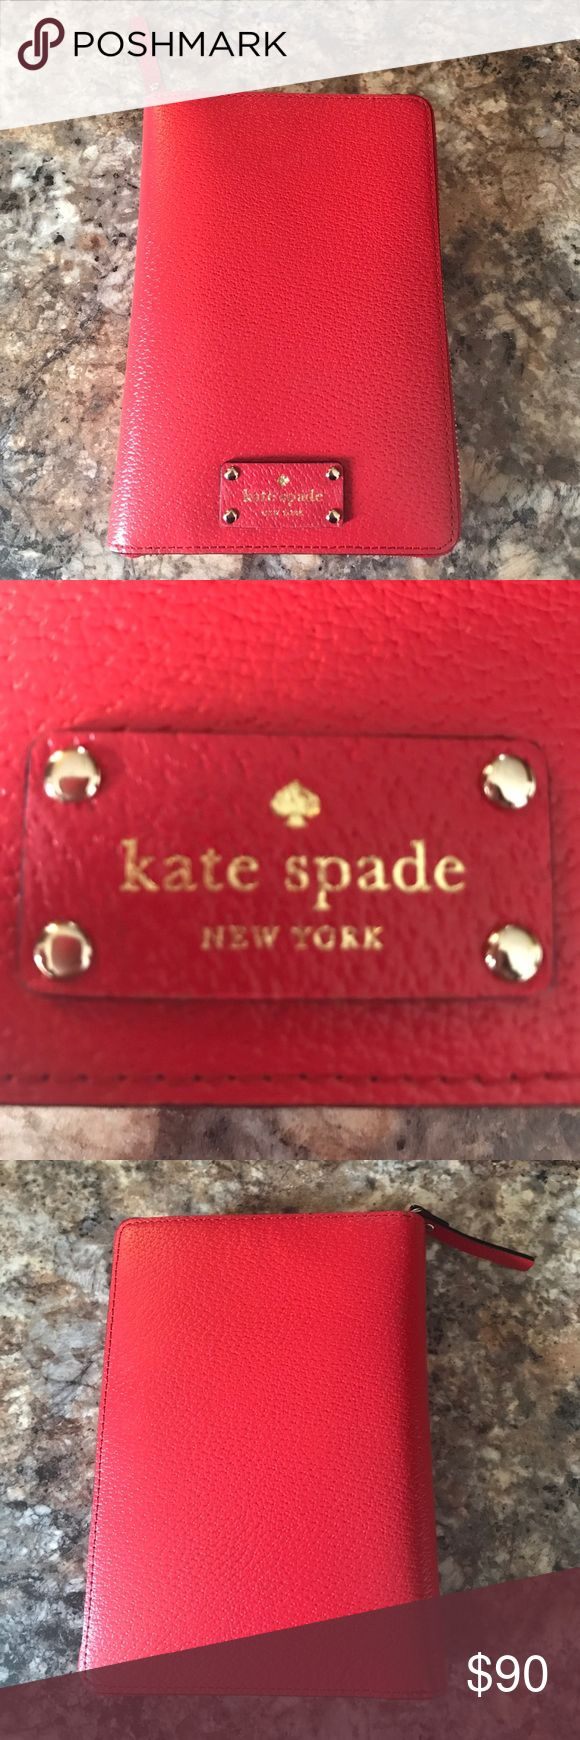 Kate Spade Wellesley Agenda Planner in Red This beautiful cherry red agenda/planner is by Kate Spade. Brand new and in perfect condition. Binder rings are tight and have never been opened.  Comes with 2017 agenda inserts and sections for notes, to do, birthdays, restaurants, and addresses. kate spade Other